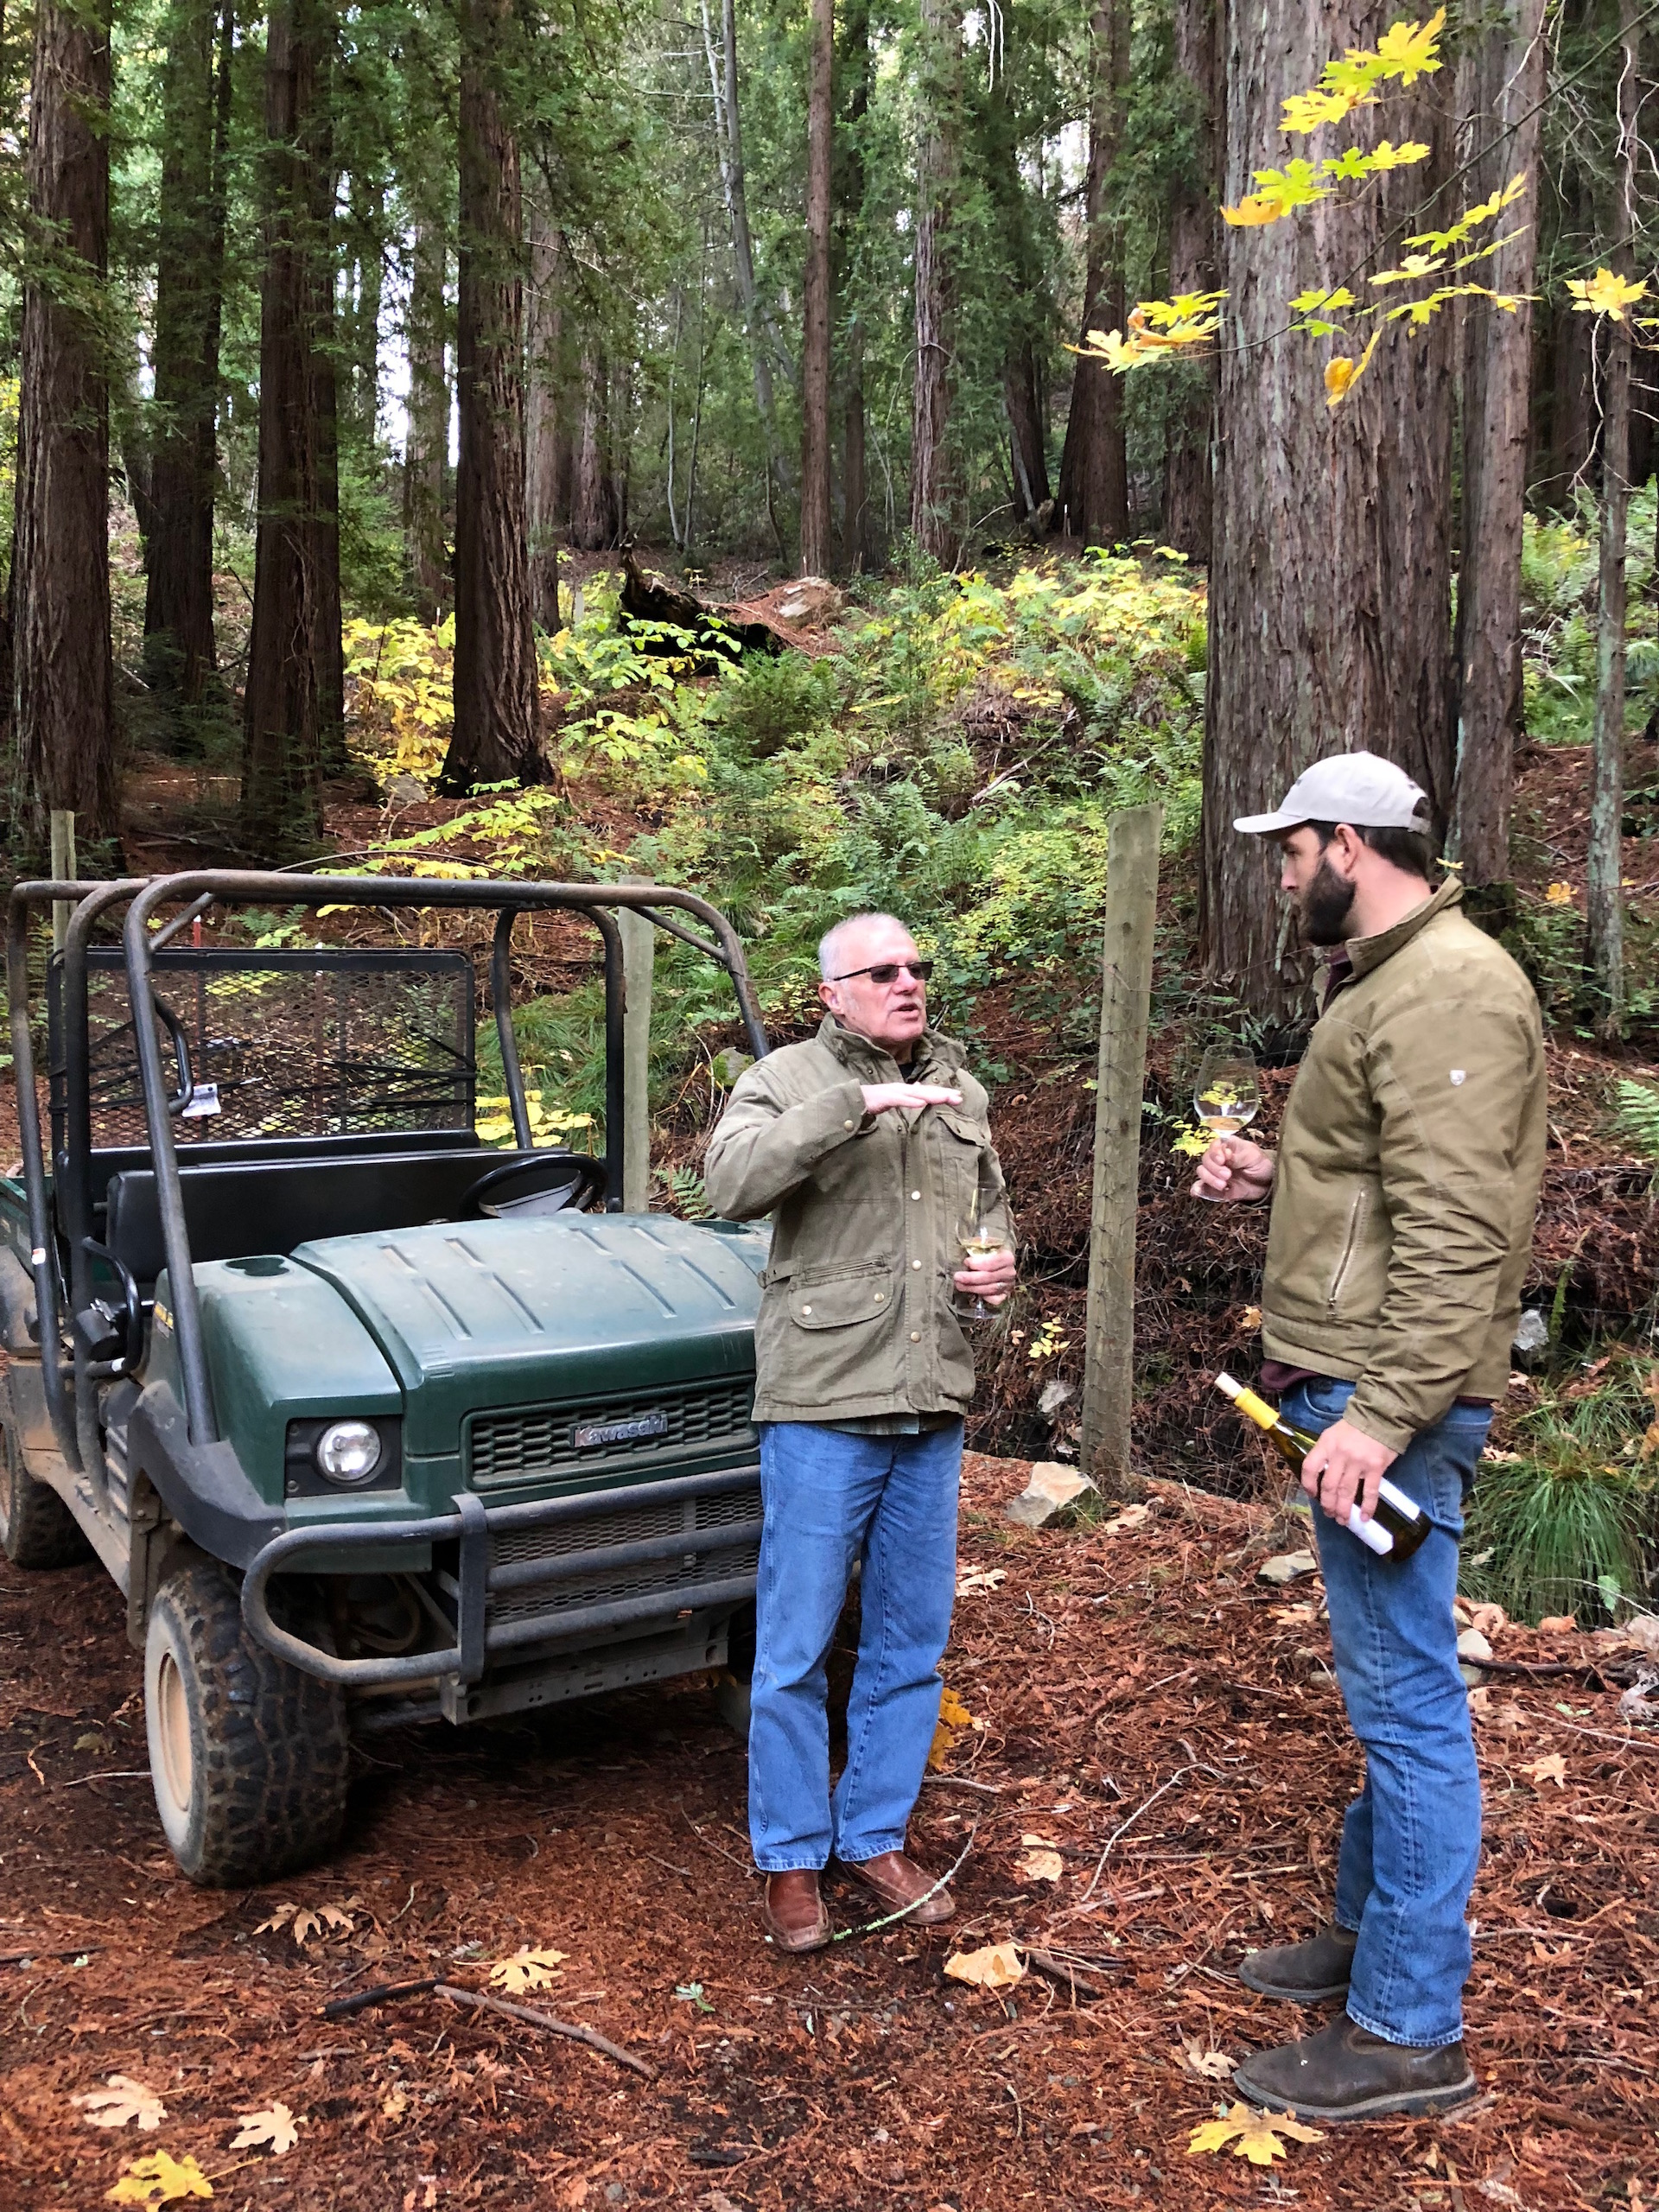 John and Smith-Madrone Vineyard & Winery's Assistant Winemaker Sam Smith discuss wine and off-road vehicles in the redwood forests of Spring Mountain